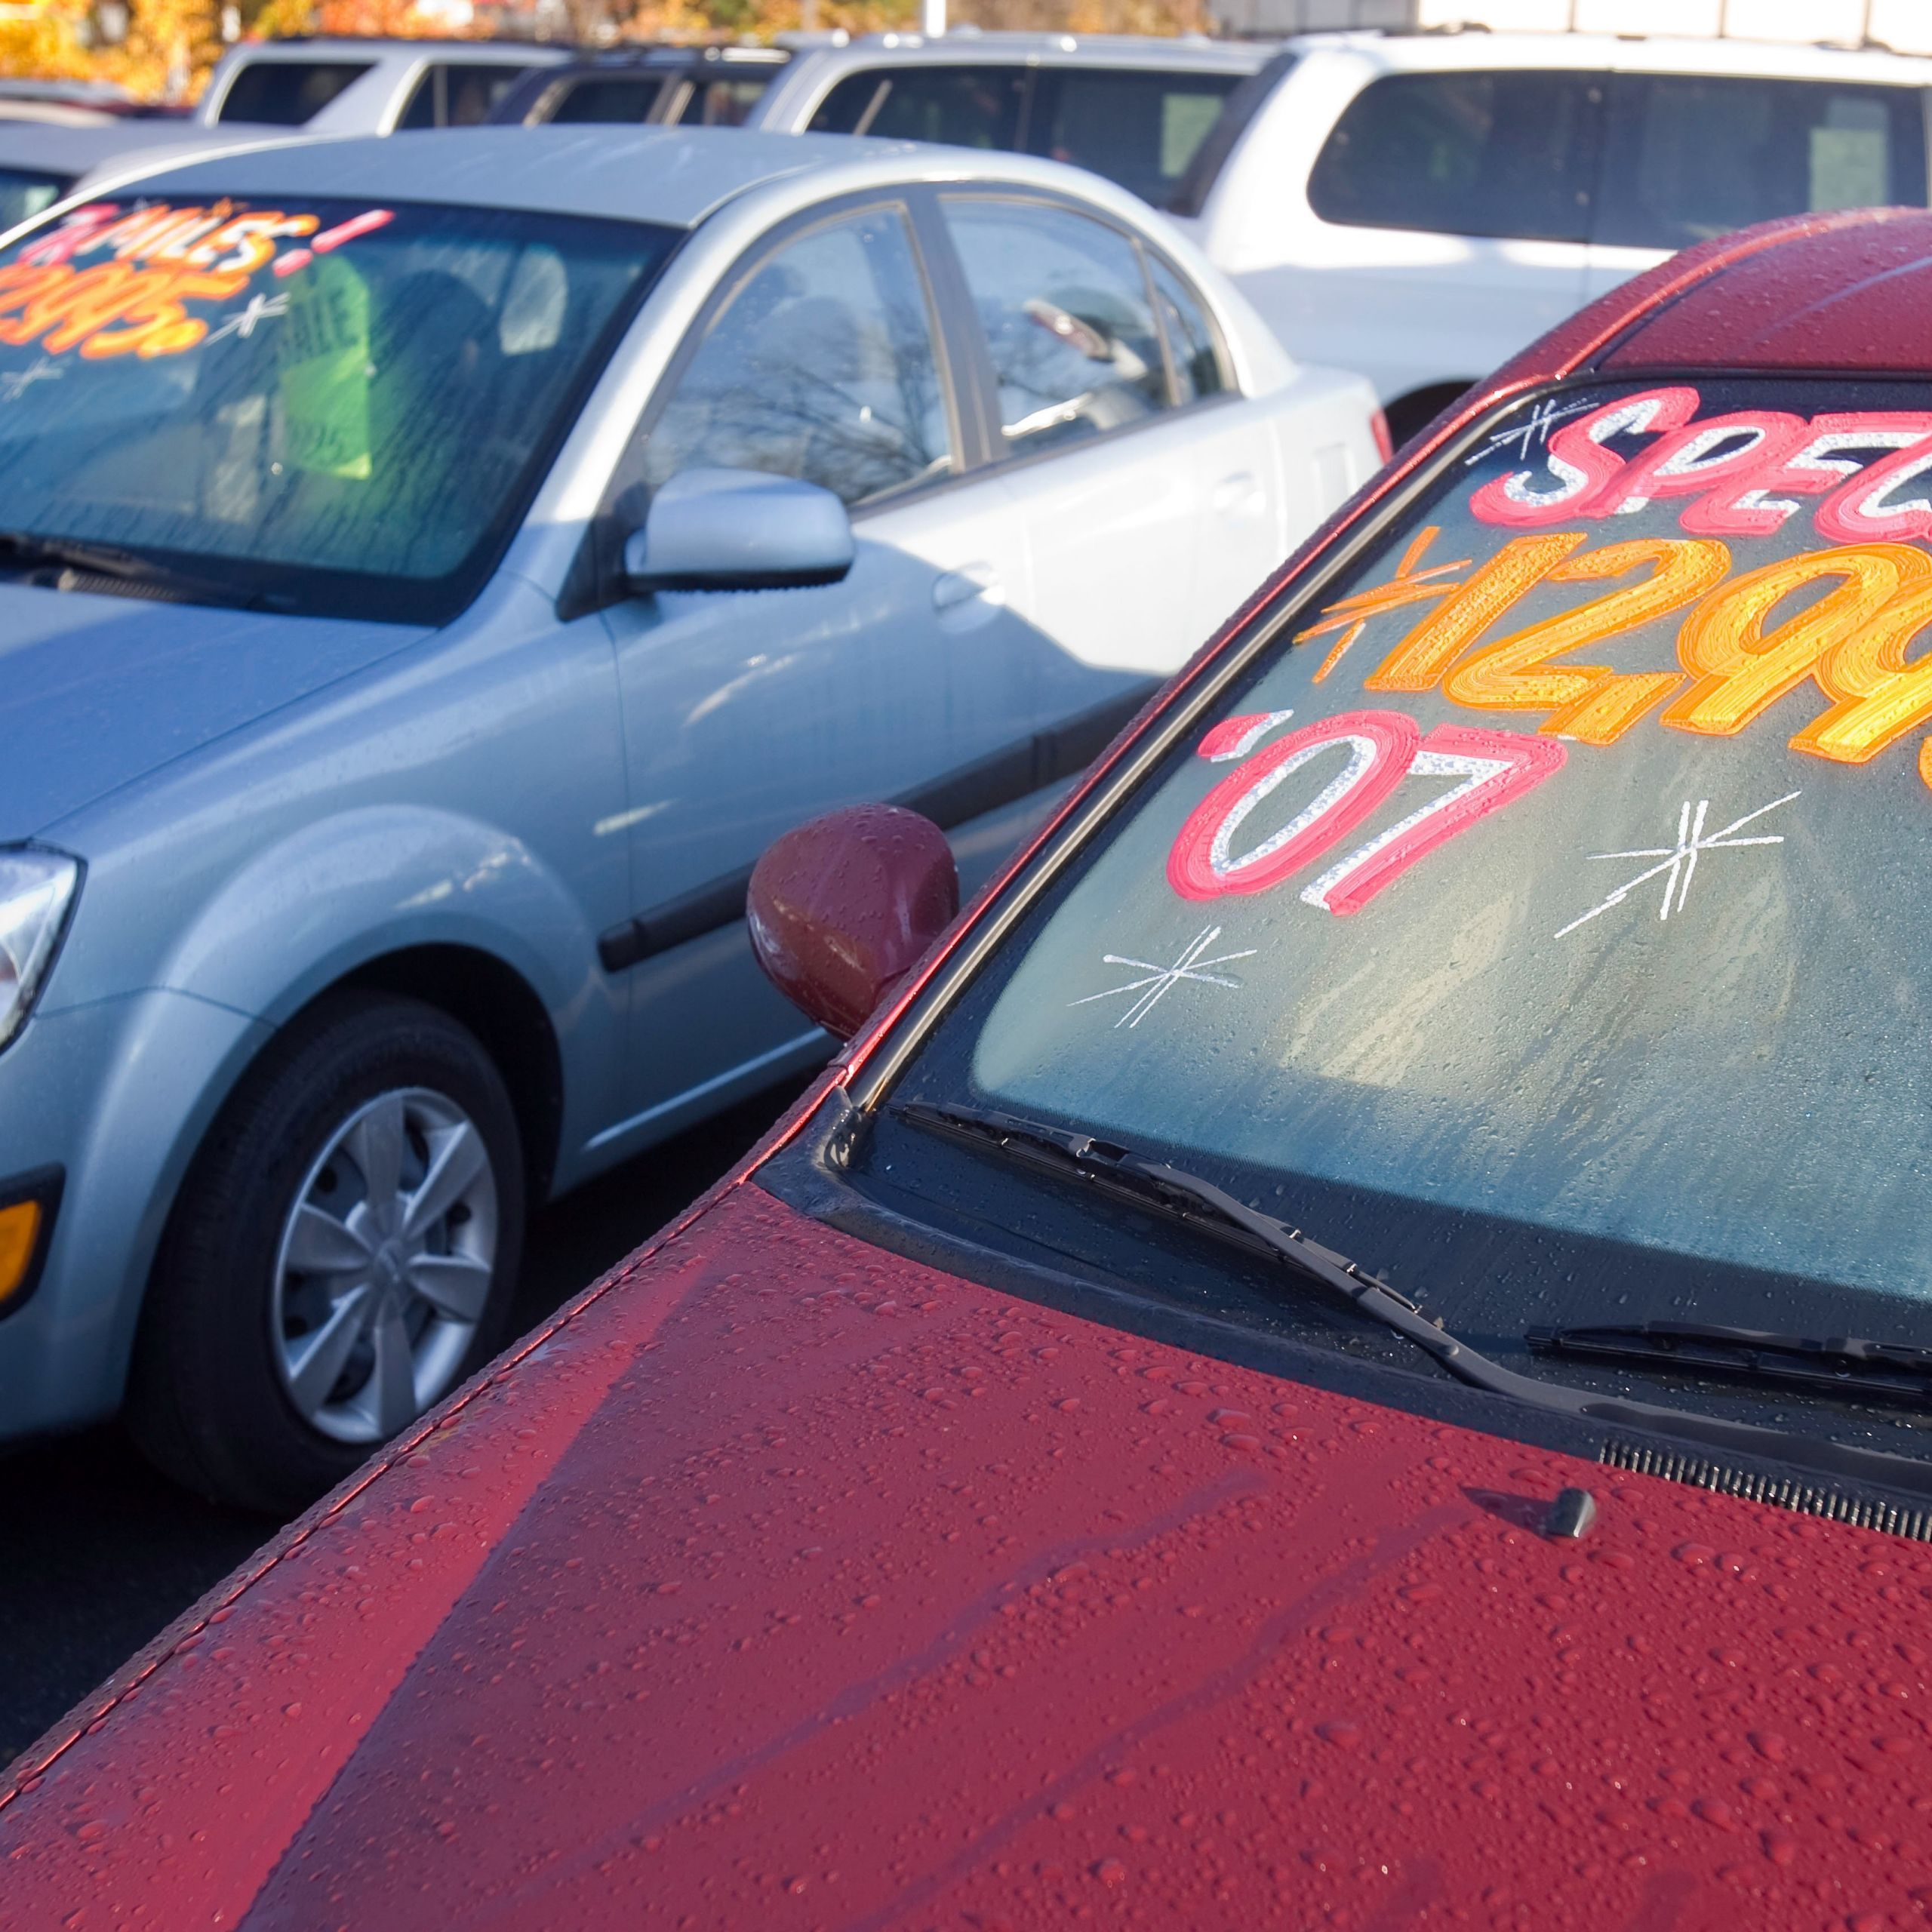 Edmunds Used Cars Fresh Used Car Prices Decline Best Time to Buy May Be now